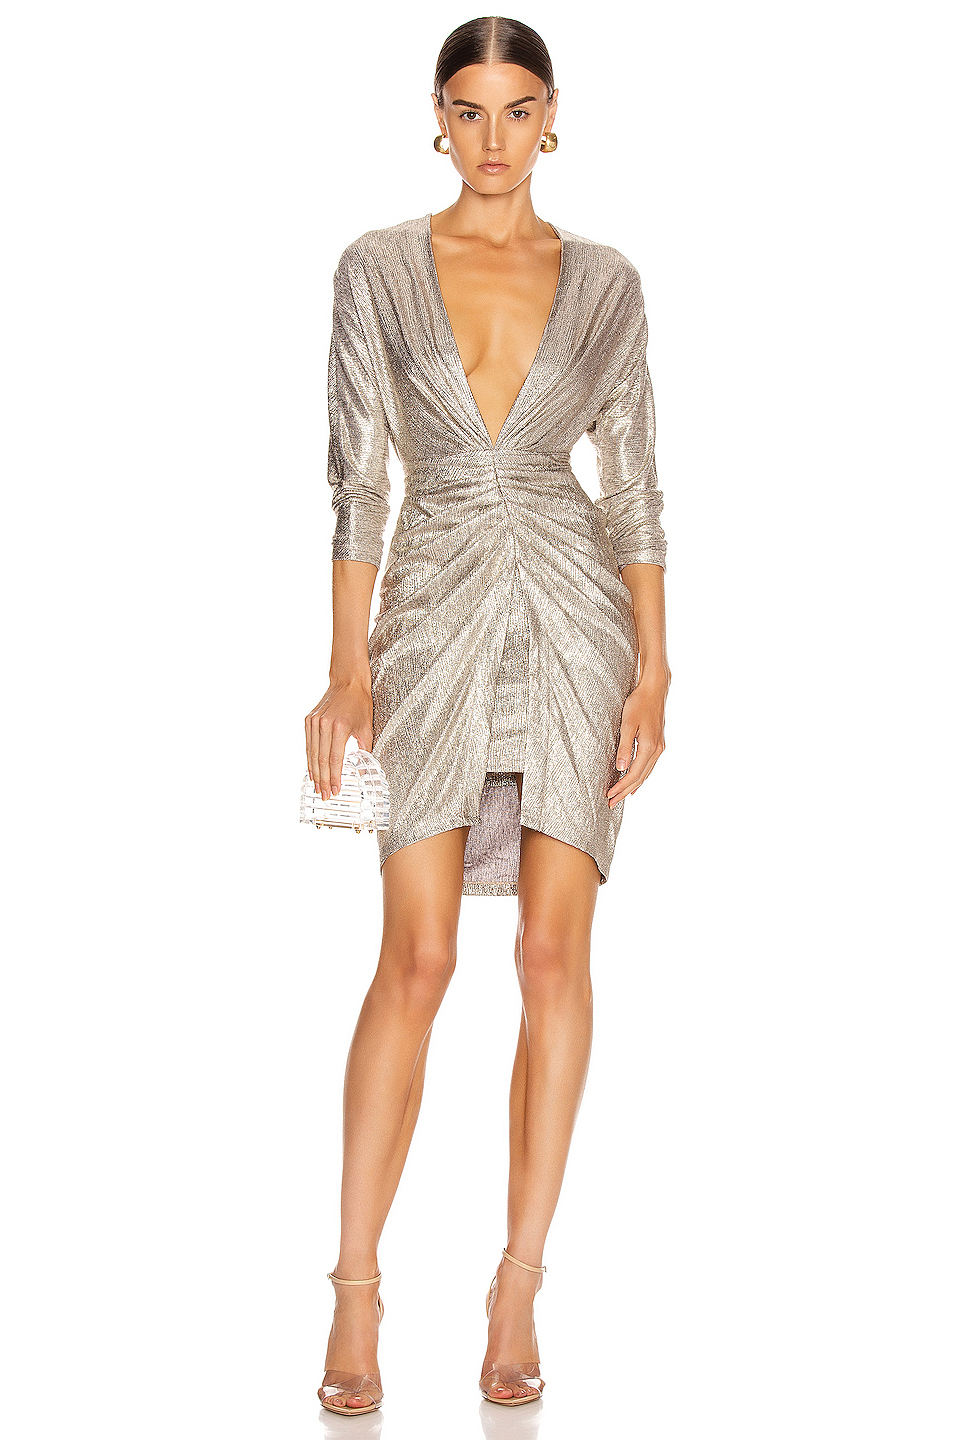 IRO City Dress in Gold FWRD City dress, Dresses